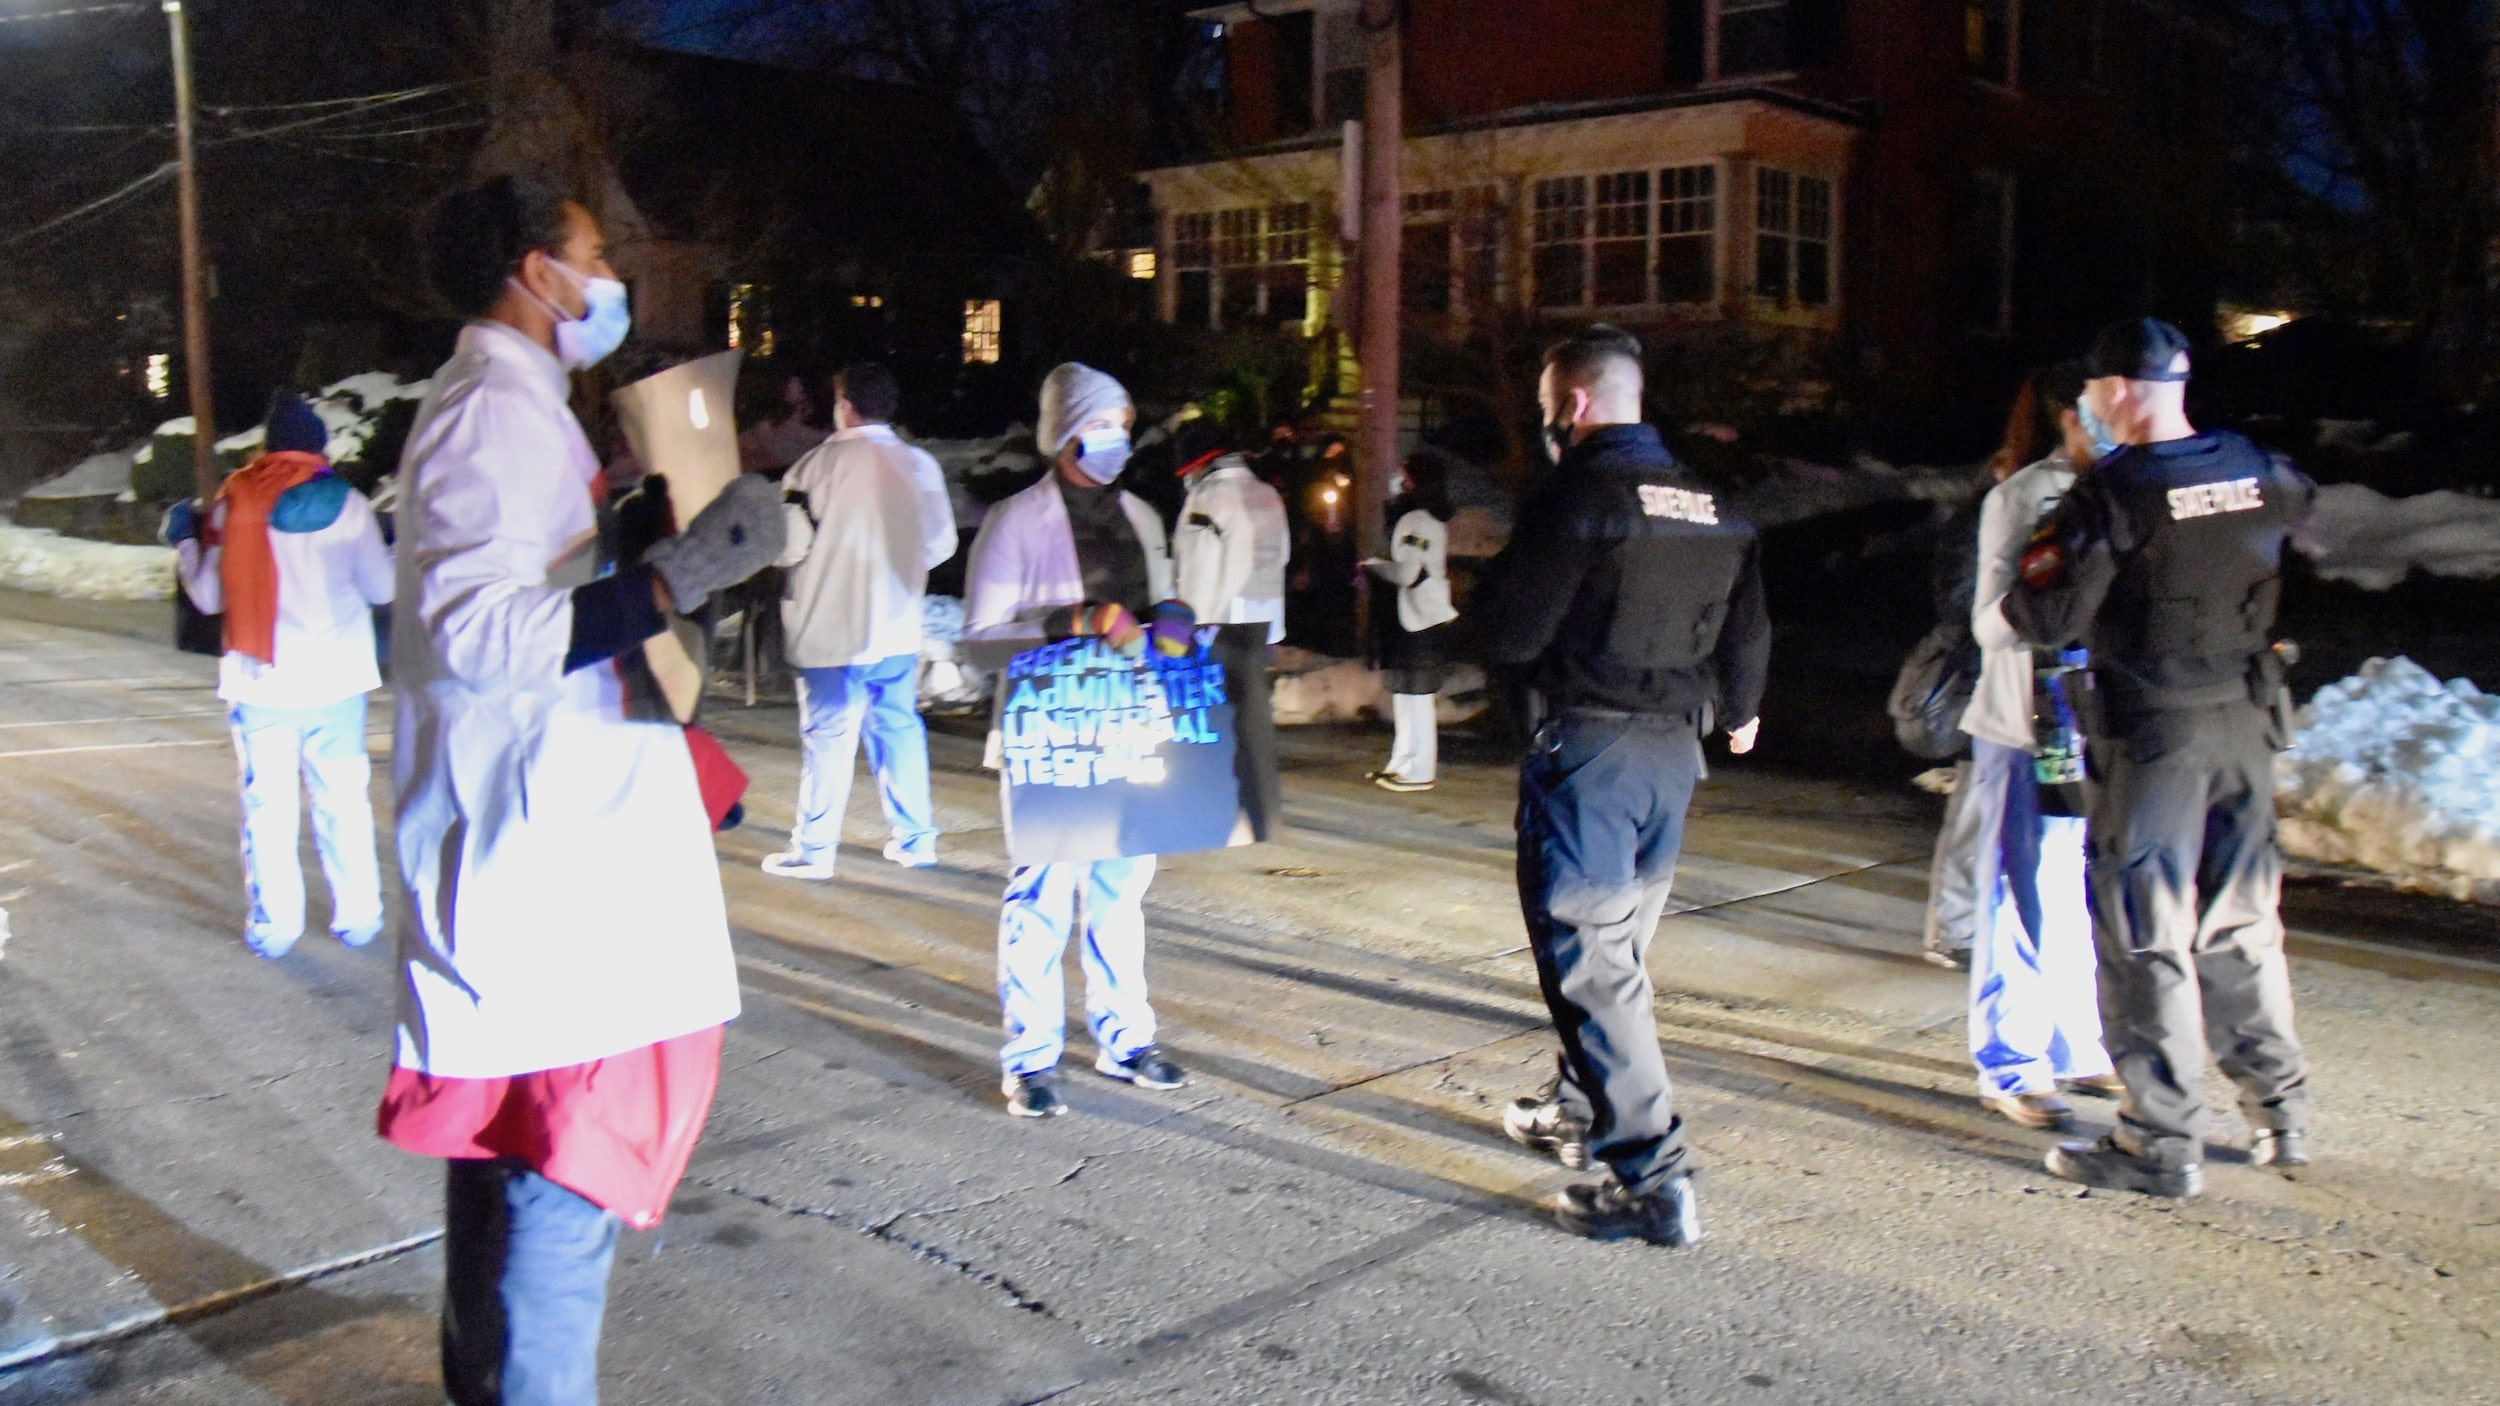 Photo for Six arrested outside Governor Raimondo's home protesting conditions at the ACI